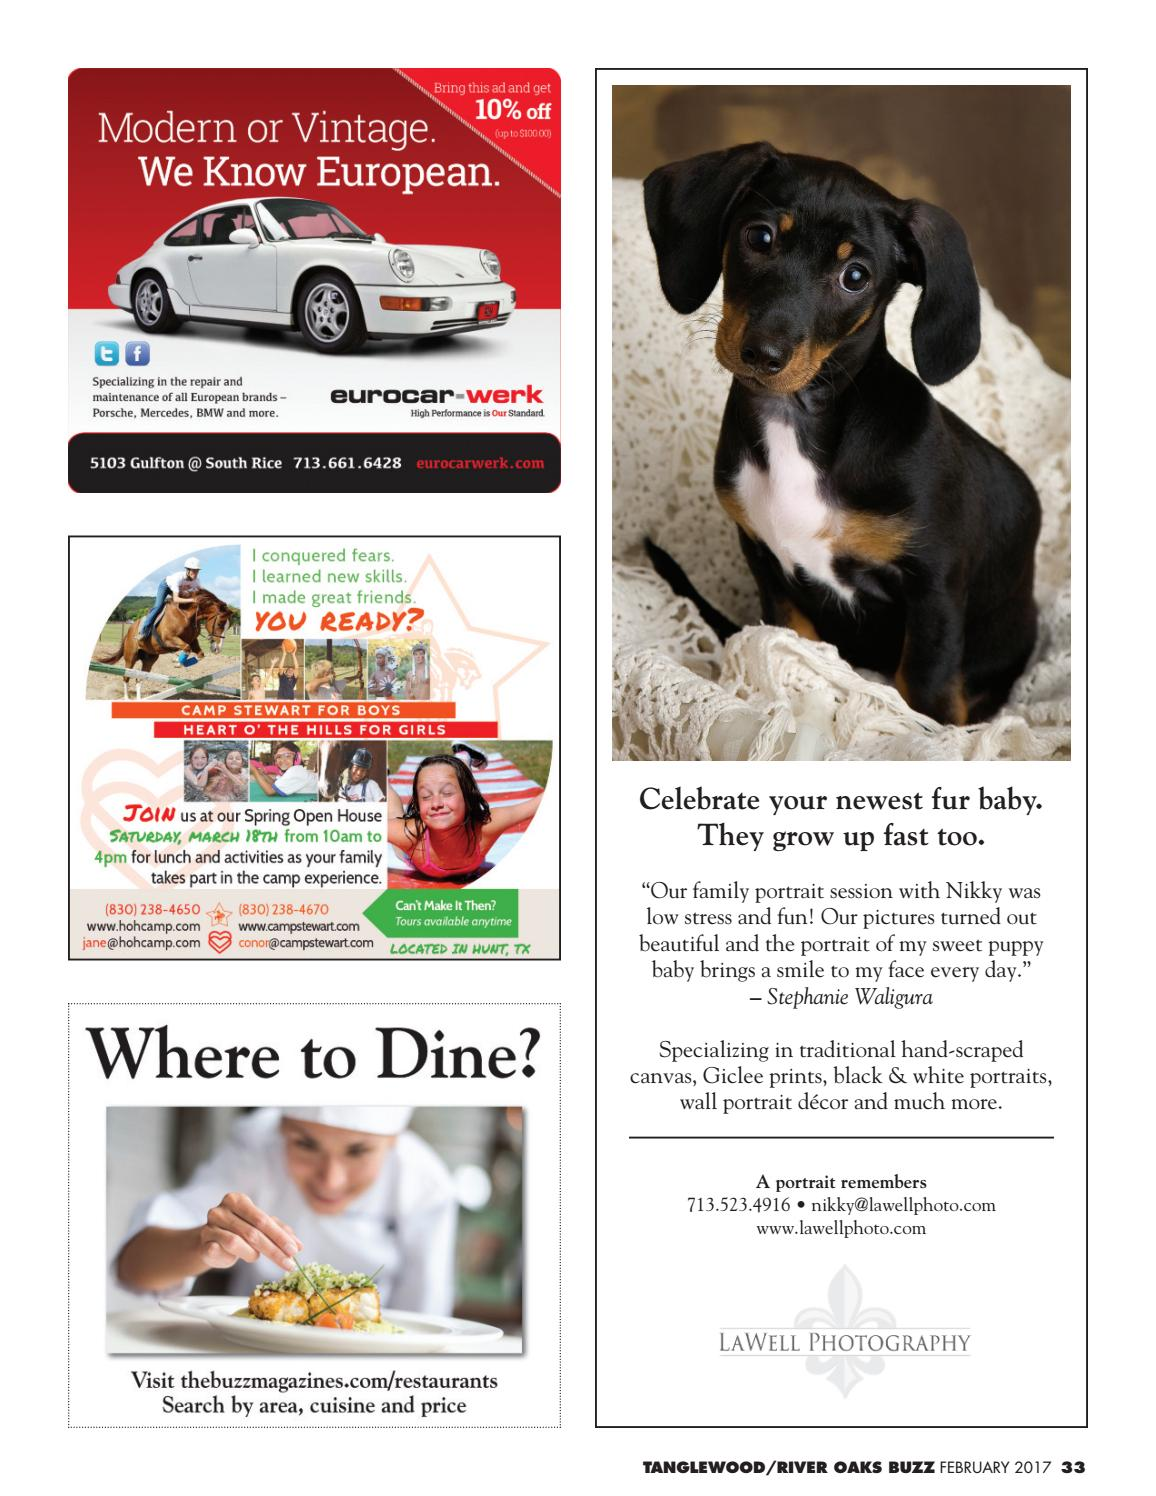 The Tanglewood River Oaks Buzz February 2017 By The Buzz Magazines